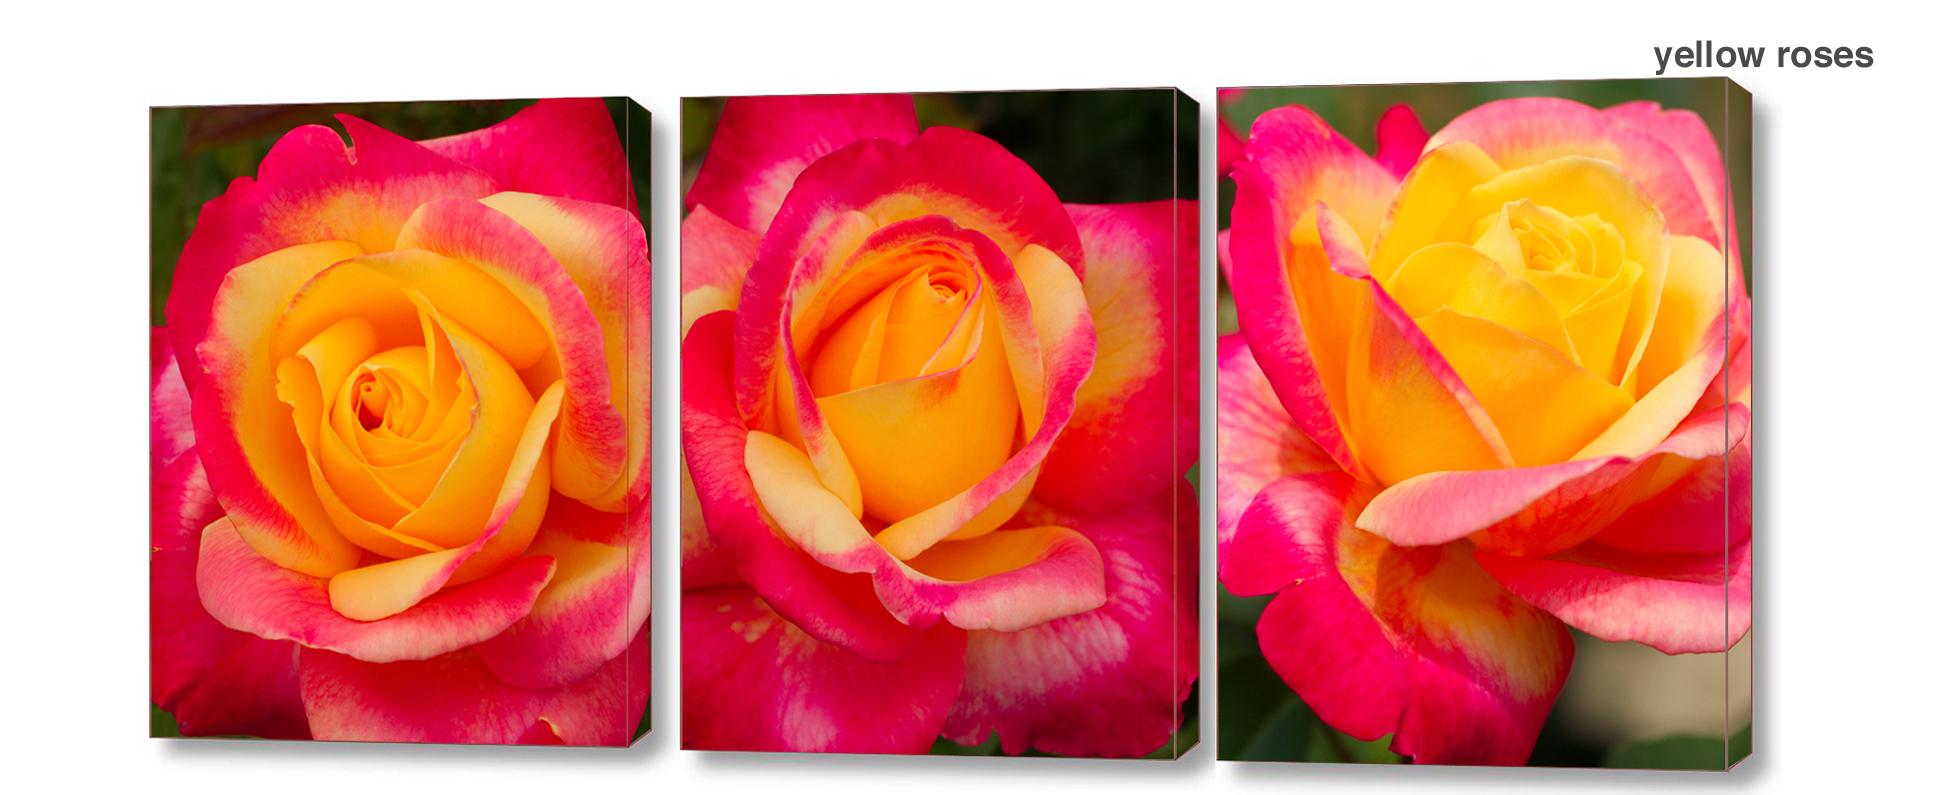 yellow rose series - Floral Series Wall Decor Macro Photography Matted & Giclée Canvas Prints